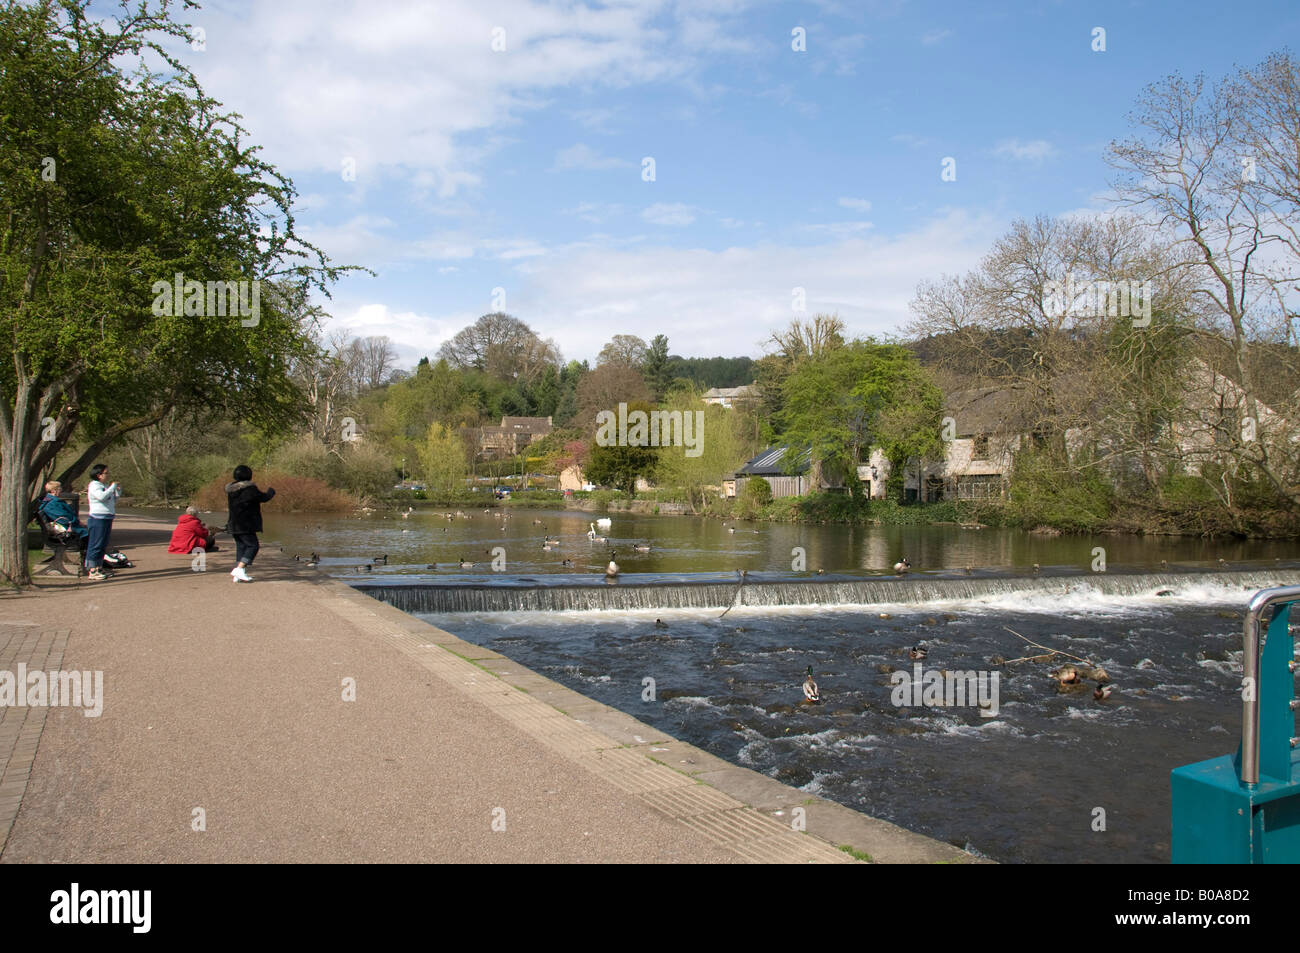 River Wye at Bakewell, Derbyshire - Stock Image